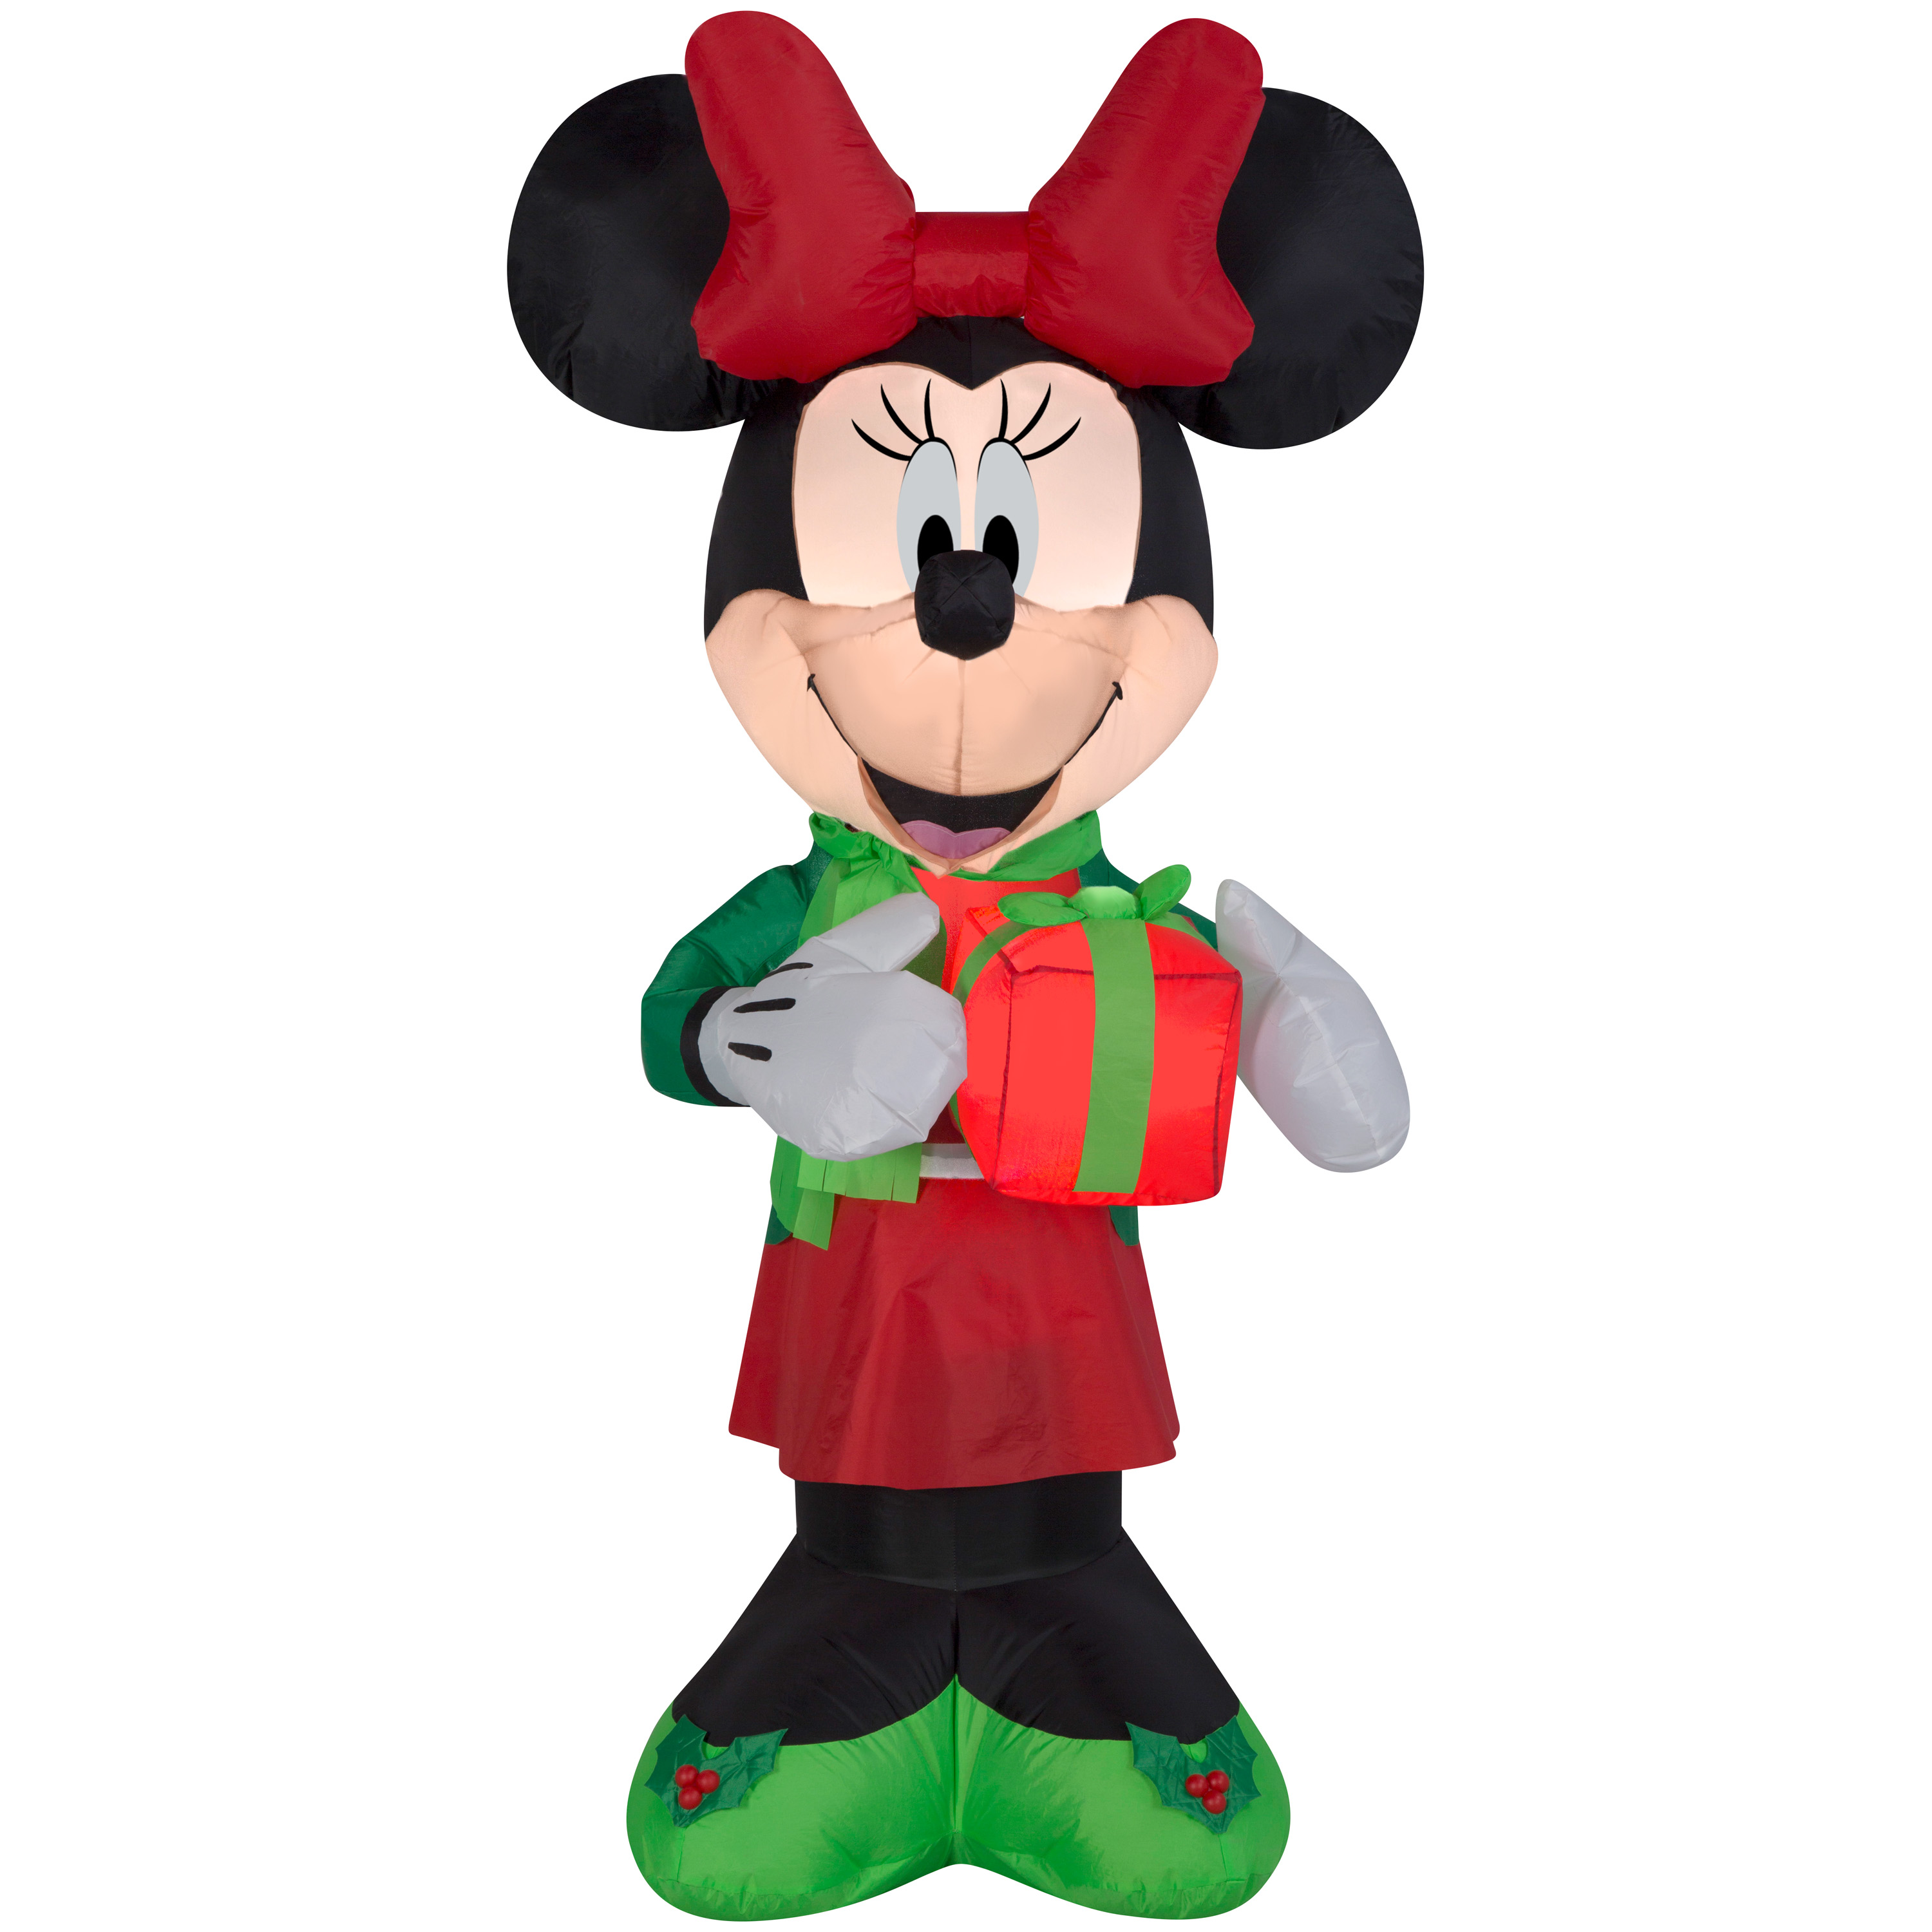 Awesome Christmas Inflatable Minnie Mouse Disney Decoration Yard ...